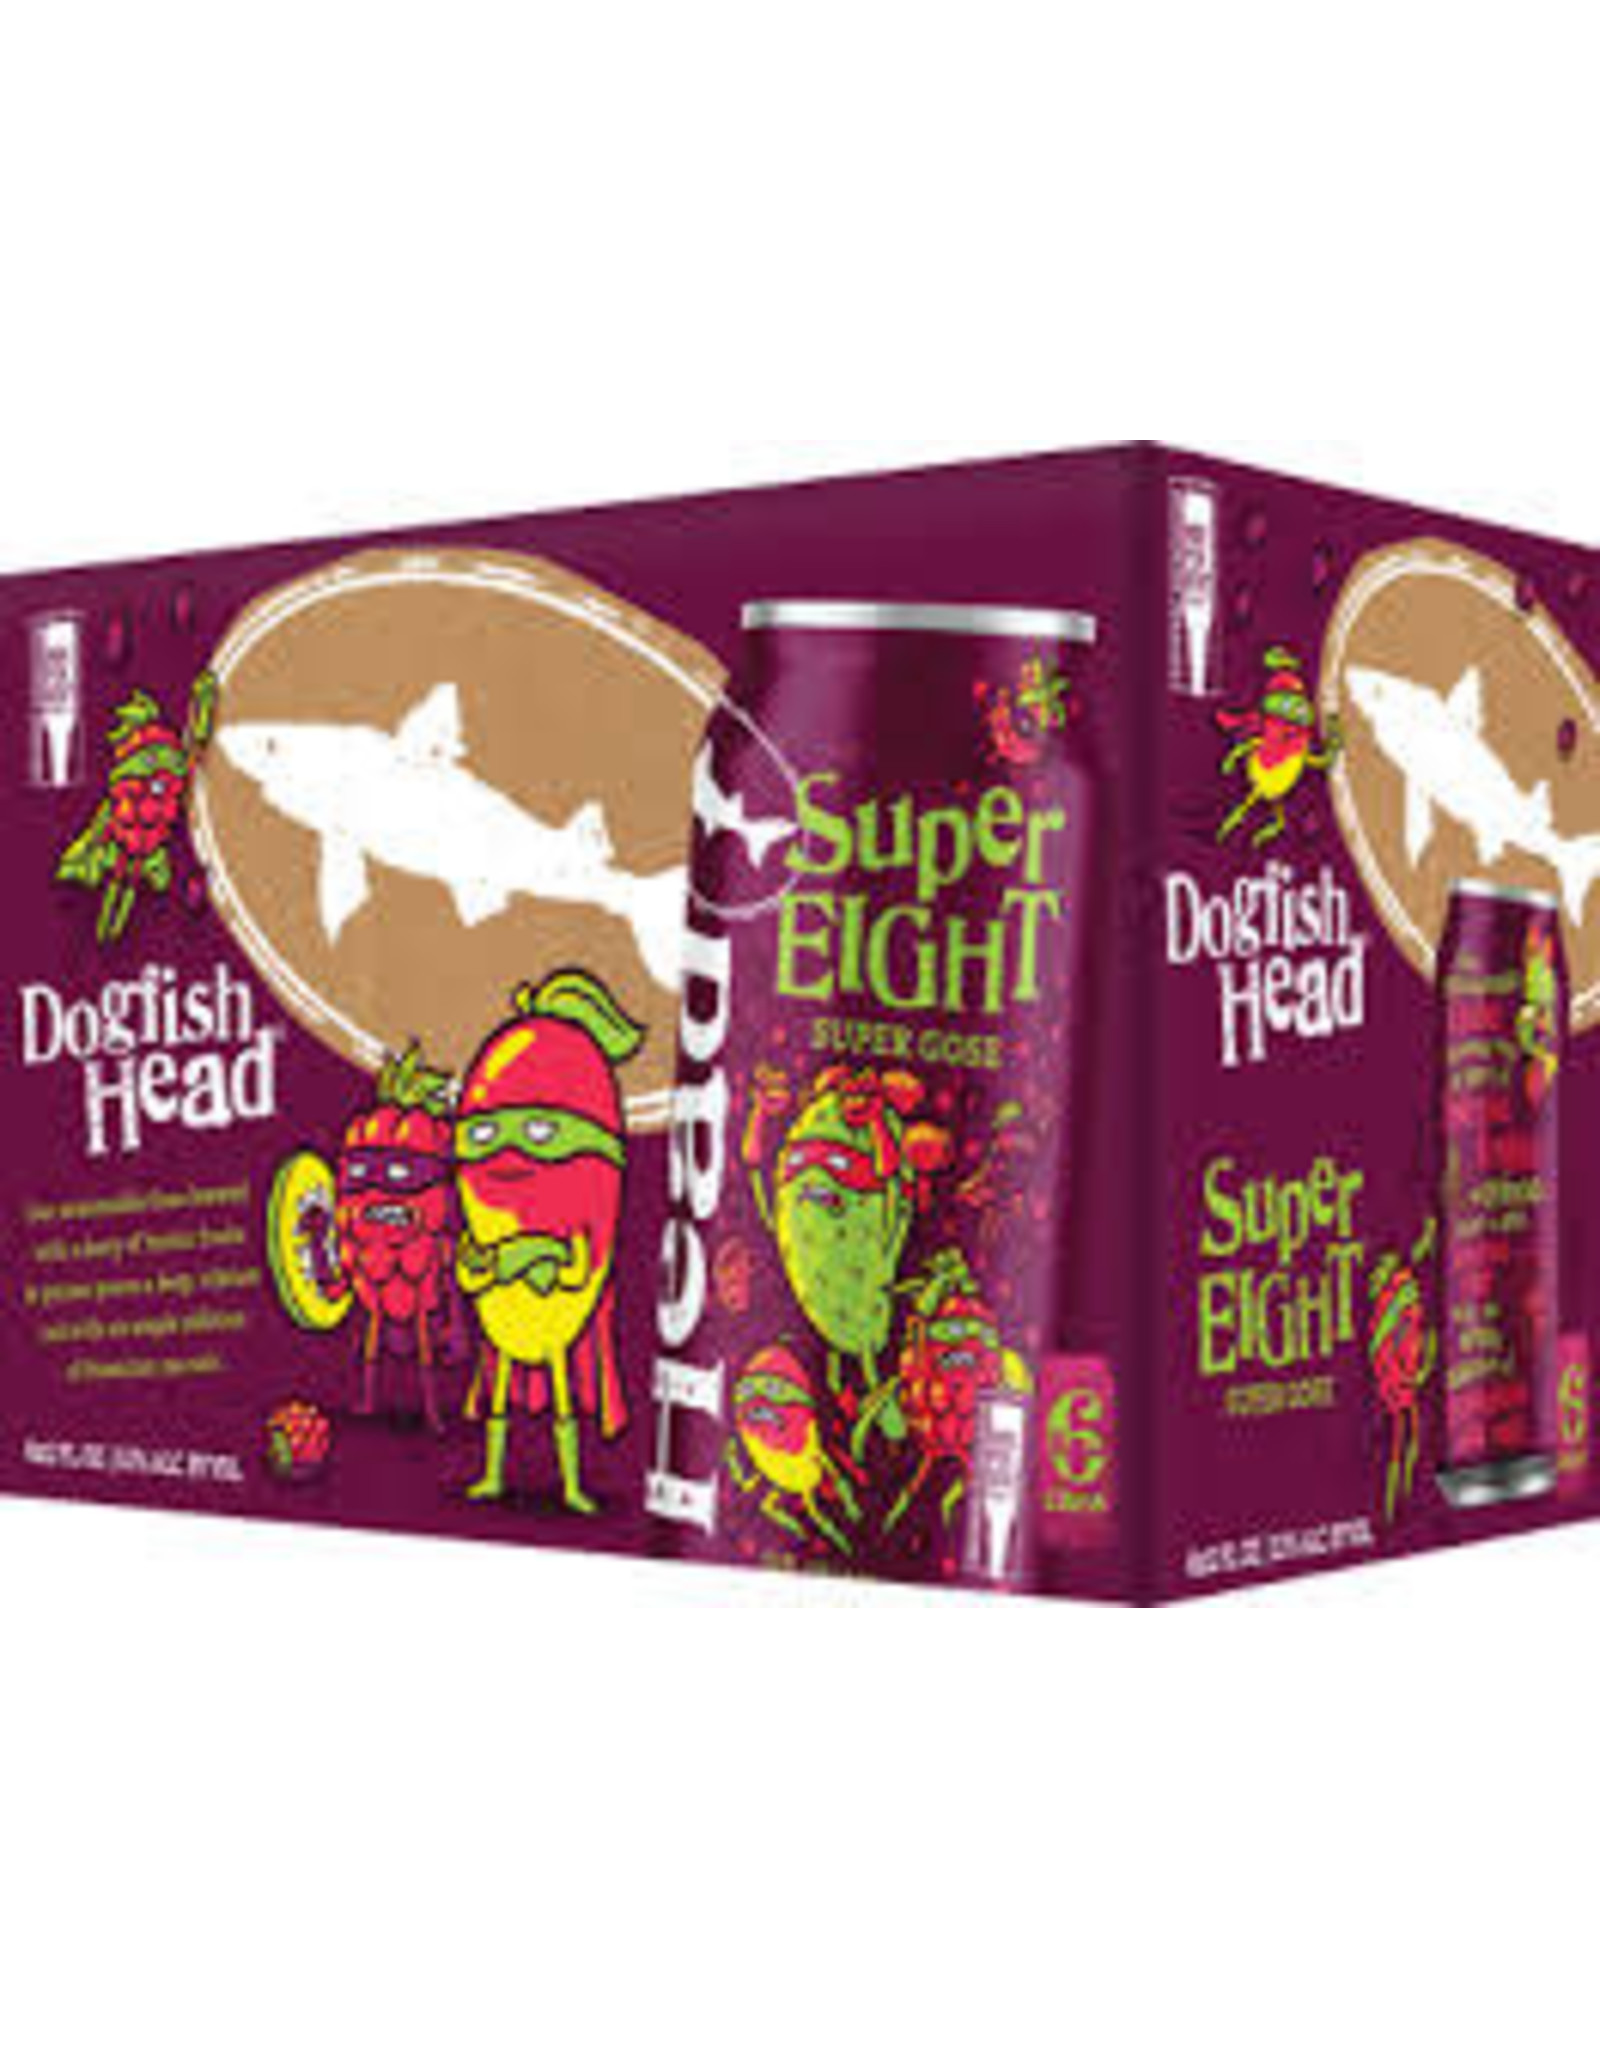 Dogfish Head Dogfish Head Super Eight Gose 6pk can